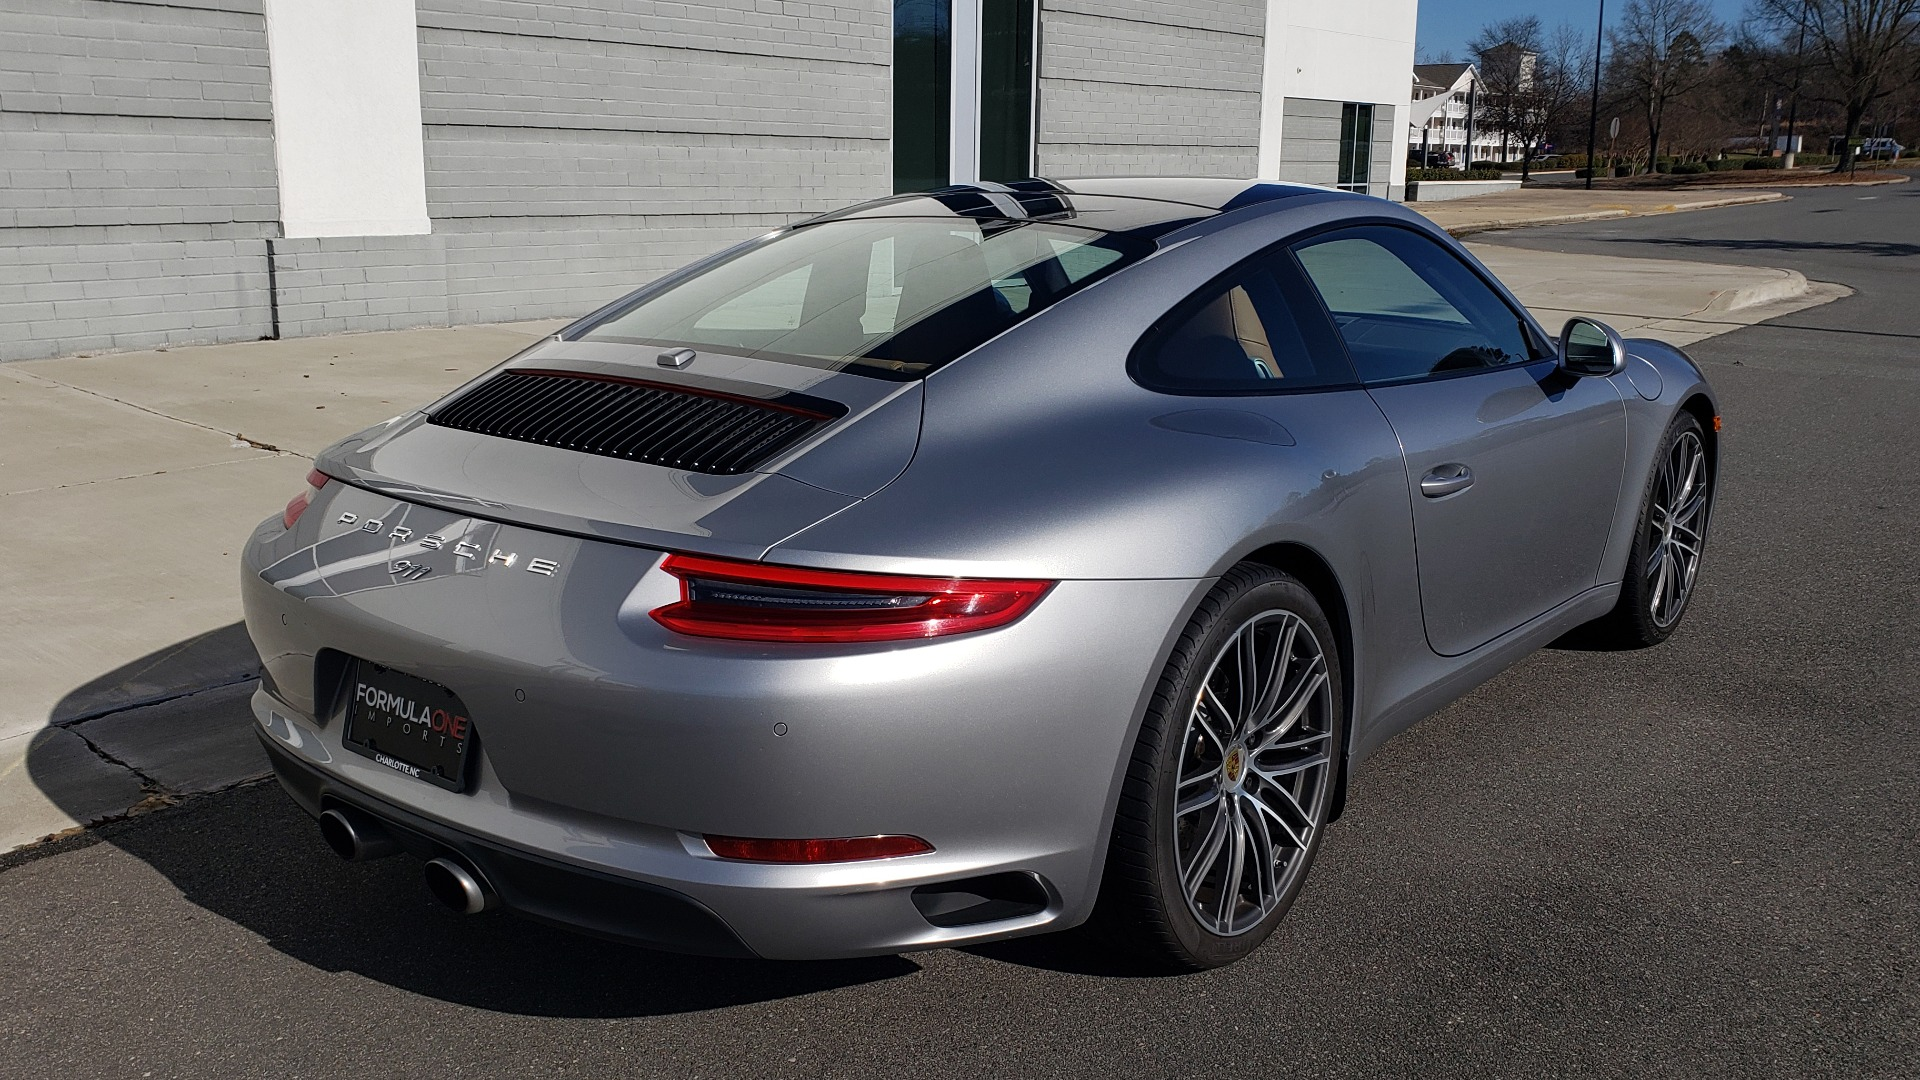 Used 2017 Porsche 911 CARRERA COUPE / 3.0L / 7-SPD MAN / NAV / PDLS / SUNROOF / REARVIEW for sale Sold at Formula Imports in Charlotte NC 28227 8